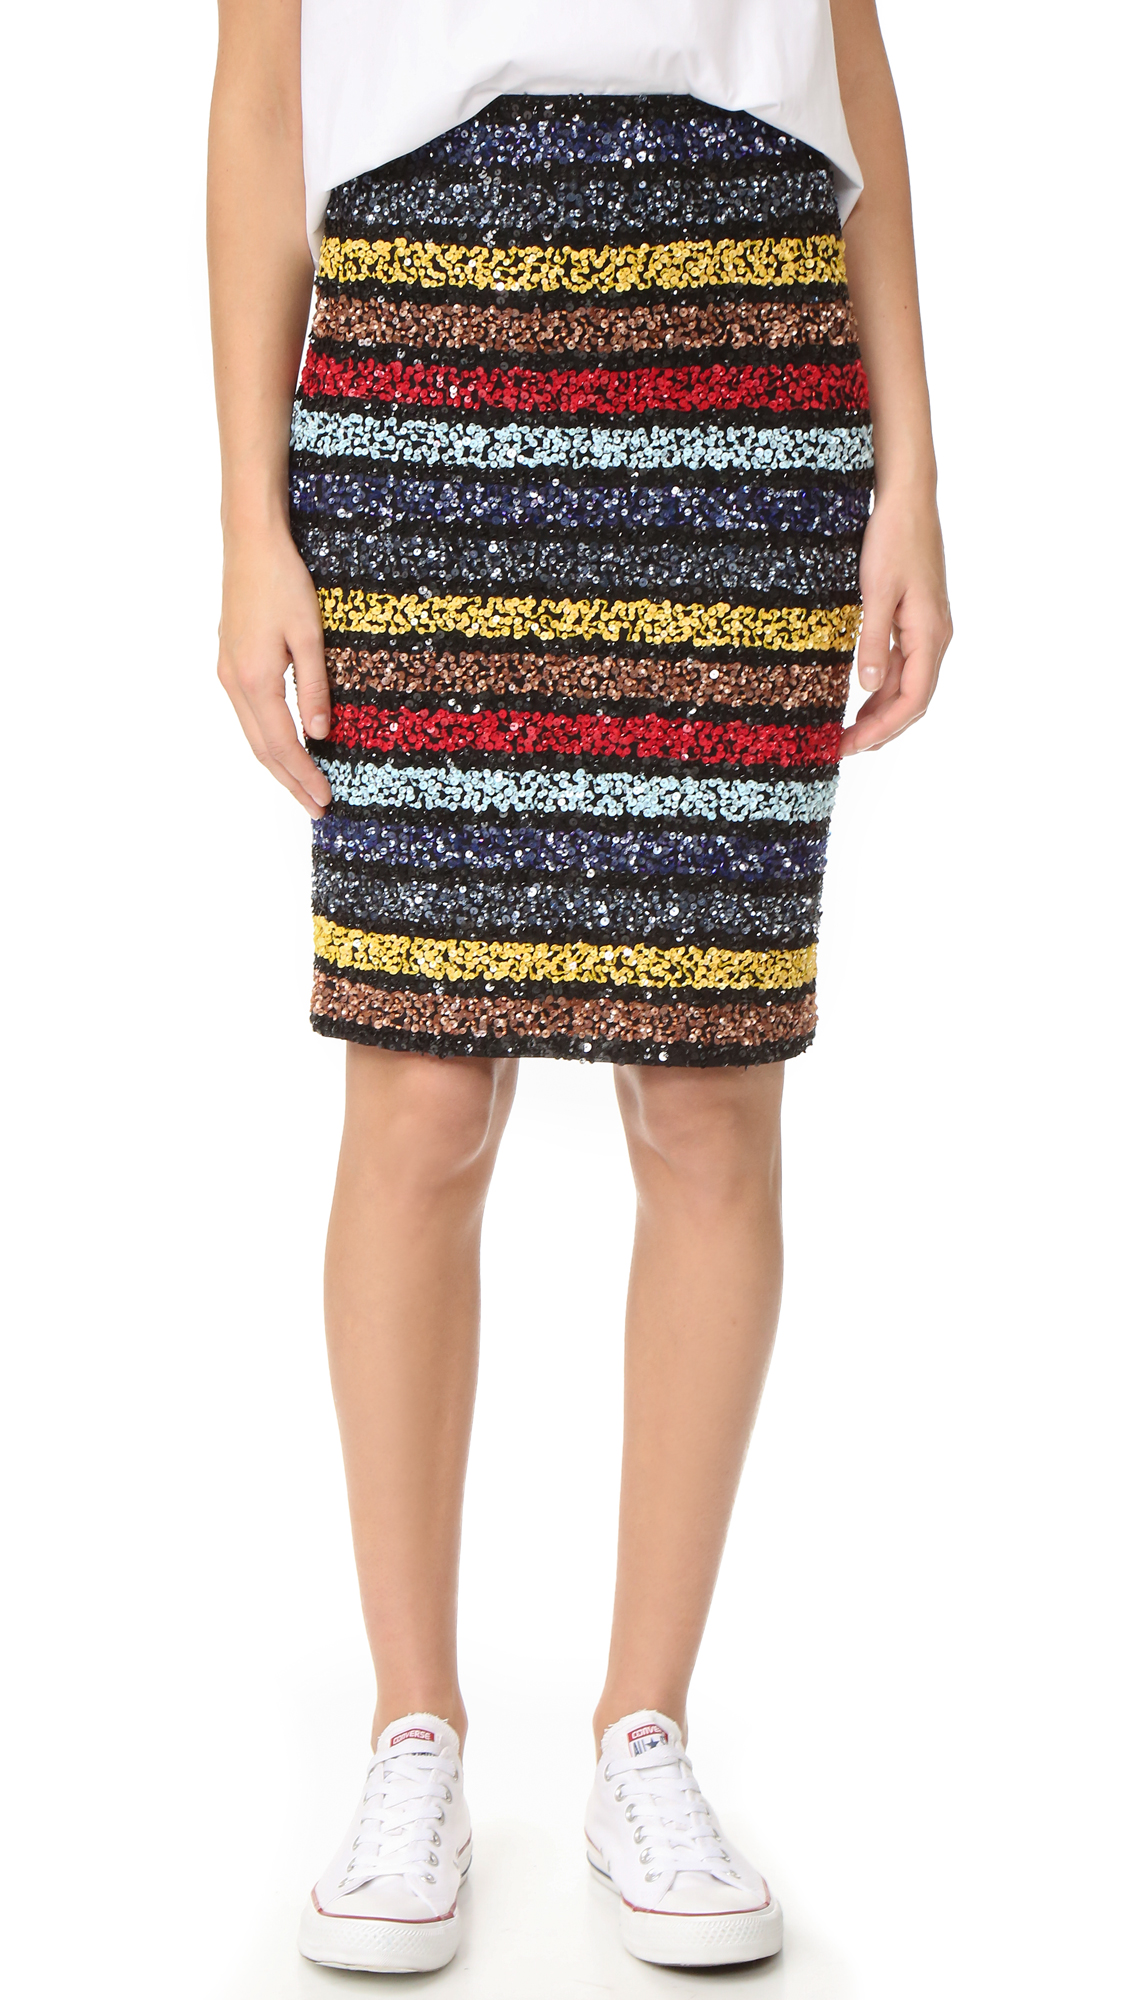 Alice + Olivia Ramos Embellished Fitted Sequin Skirt - Multi at Shopbop